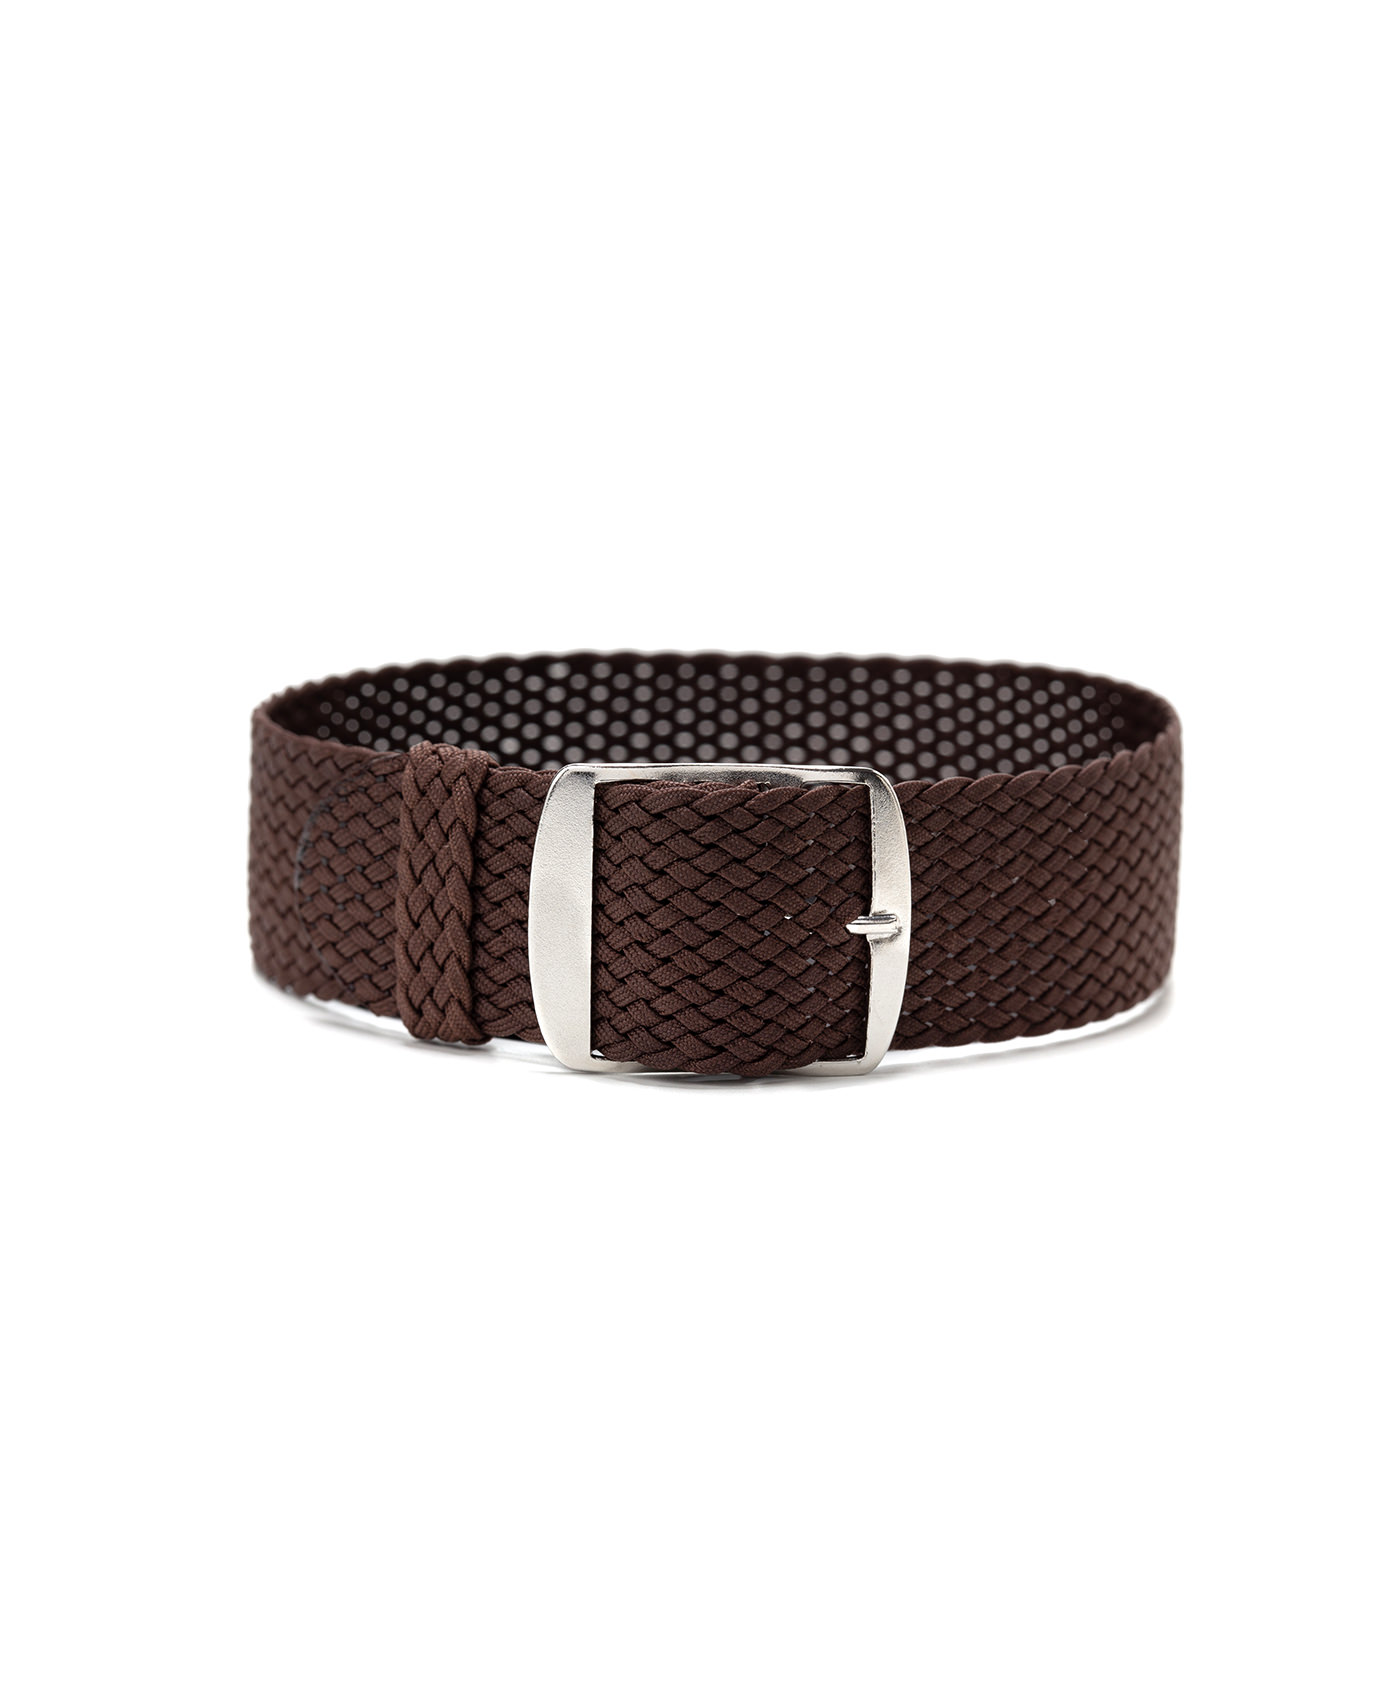 Perlon Perlon Strap Brown Watch Bands Watchbandit